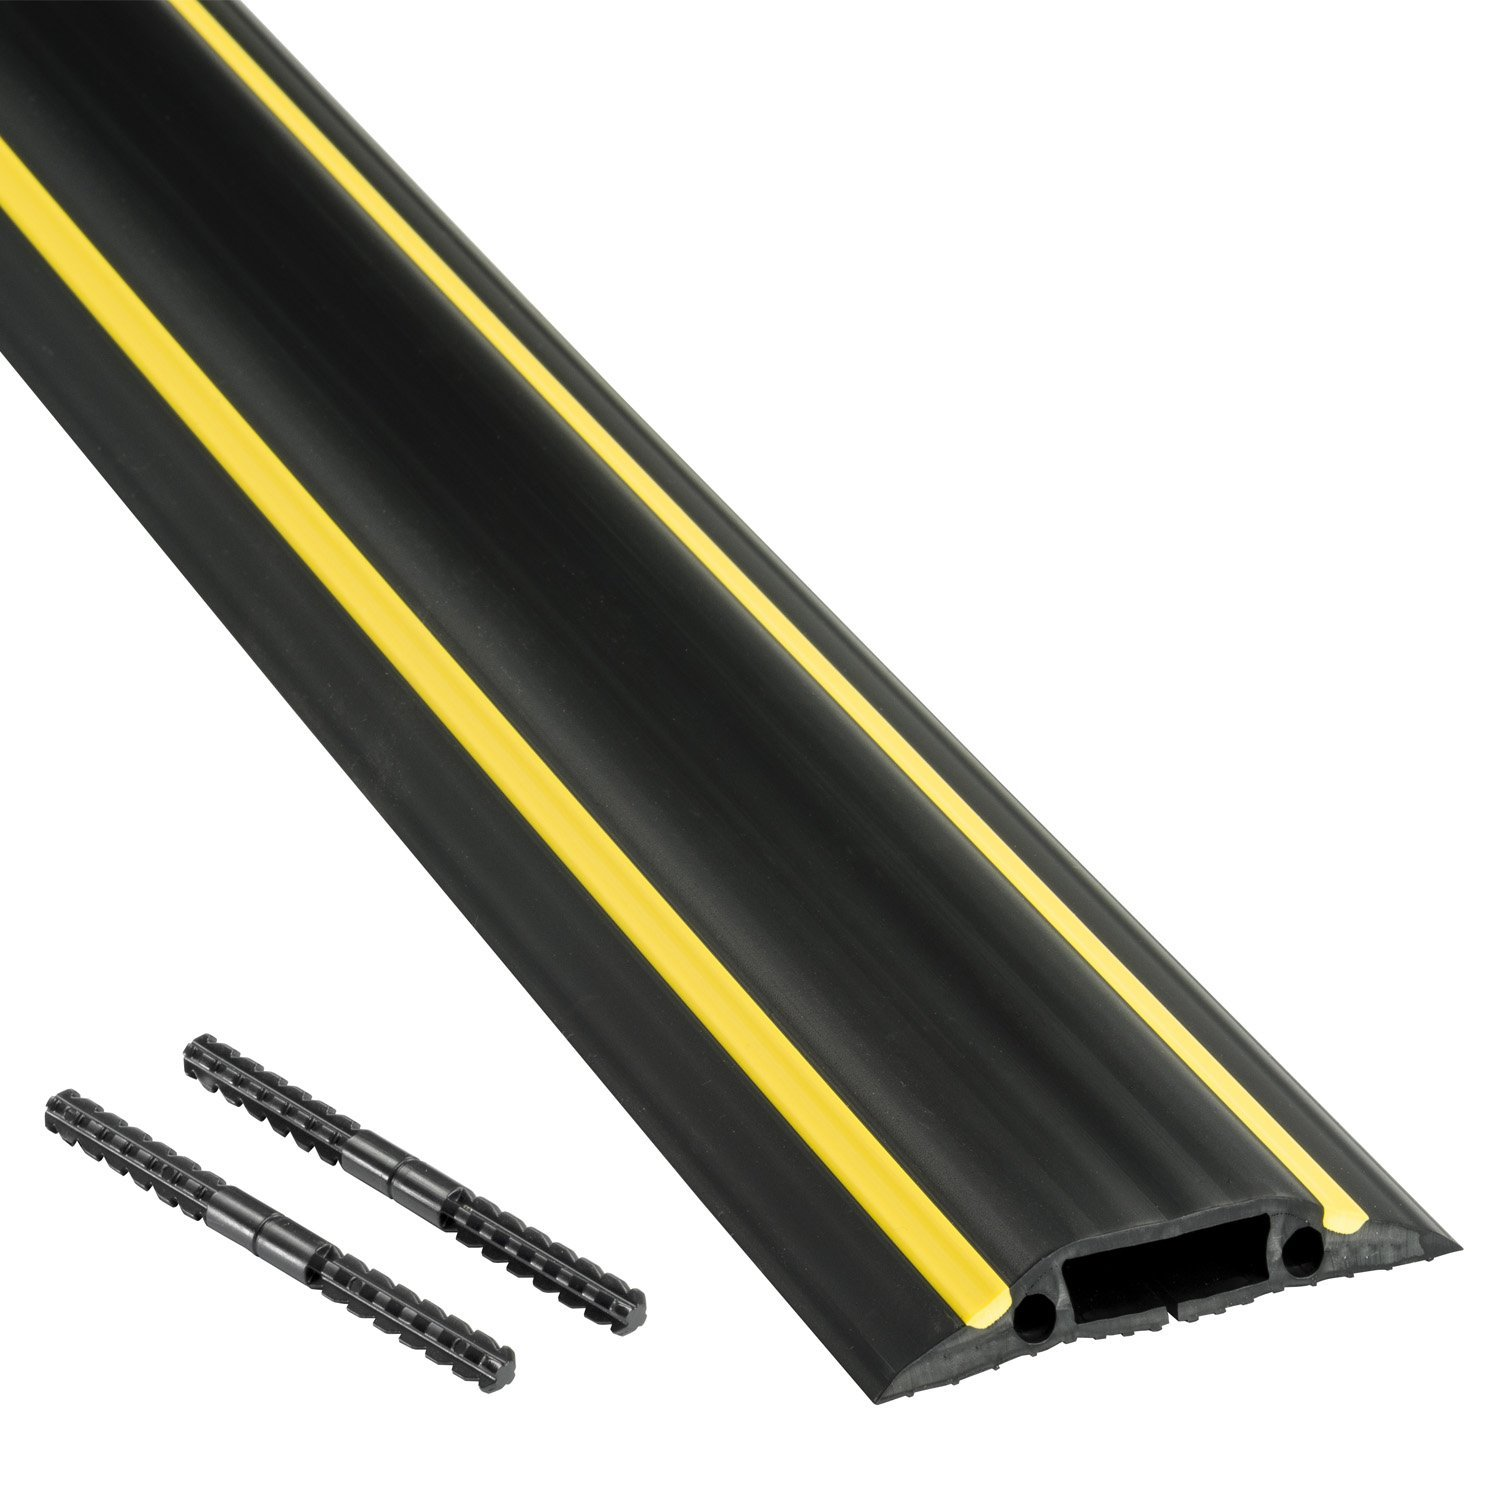 D-Line FC83H/9M Medium Duty Floor Cable Cover-Black with Yellow Hazard Stripe, 83mm Wide (30mm x 10mm Inner Channel), 9m Length